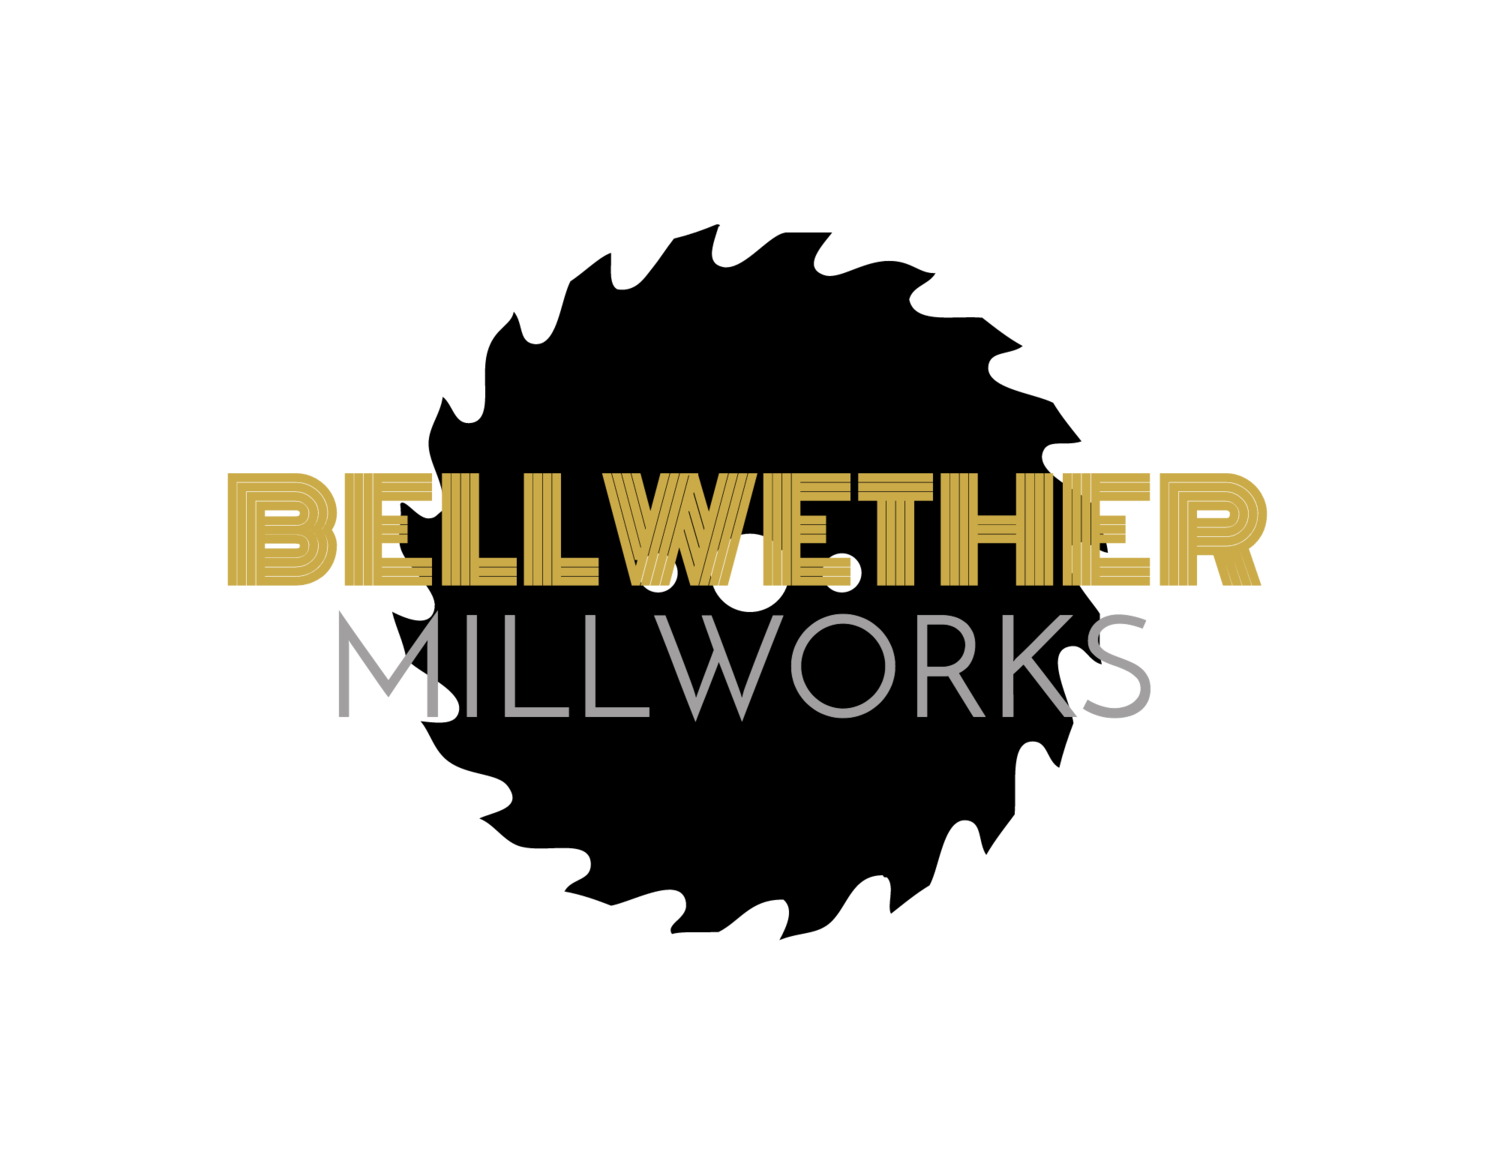 Bellwether Millworks